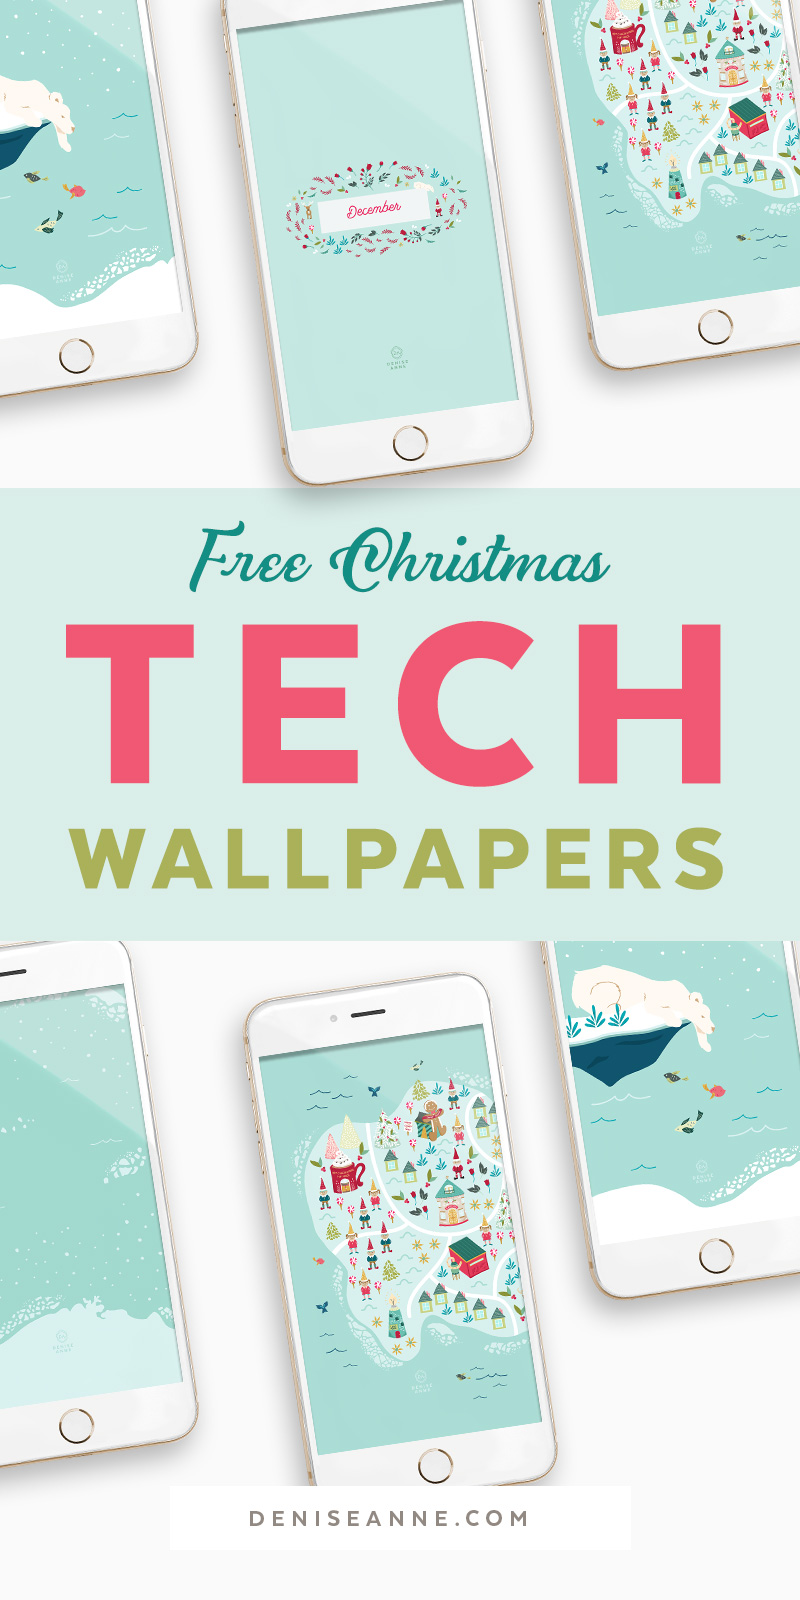 Free Christmas Phone Wallpaper Backgrounds